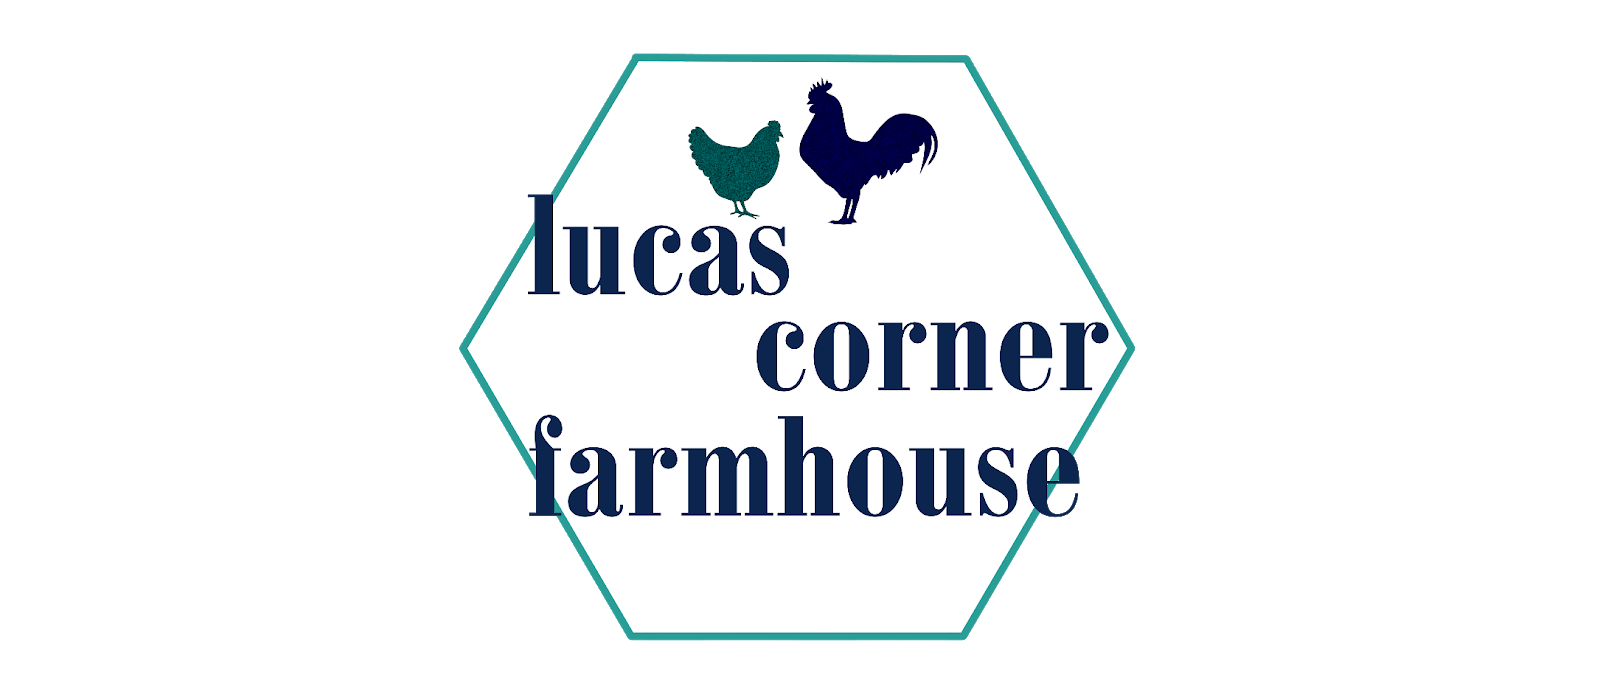 Lucas Corner Farmhouse